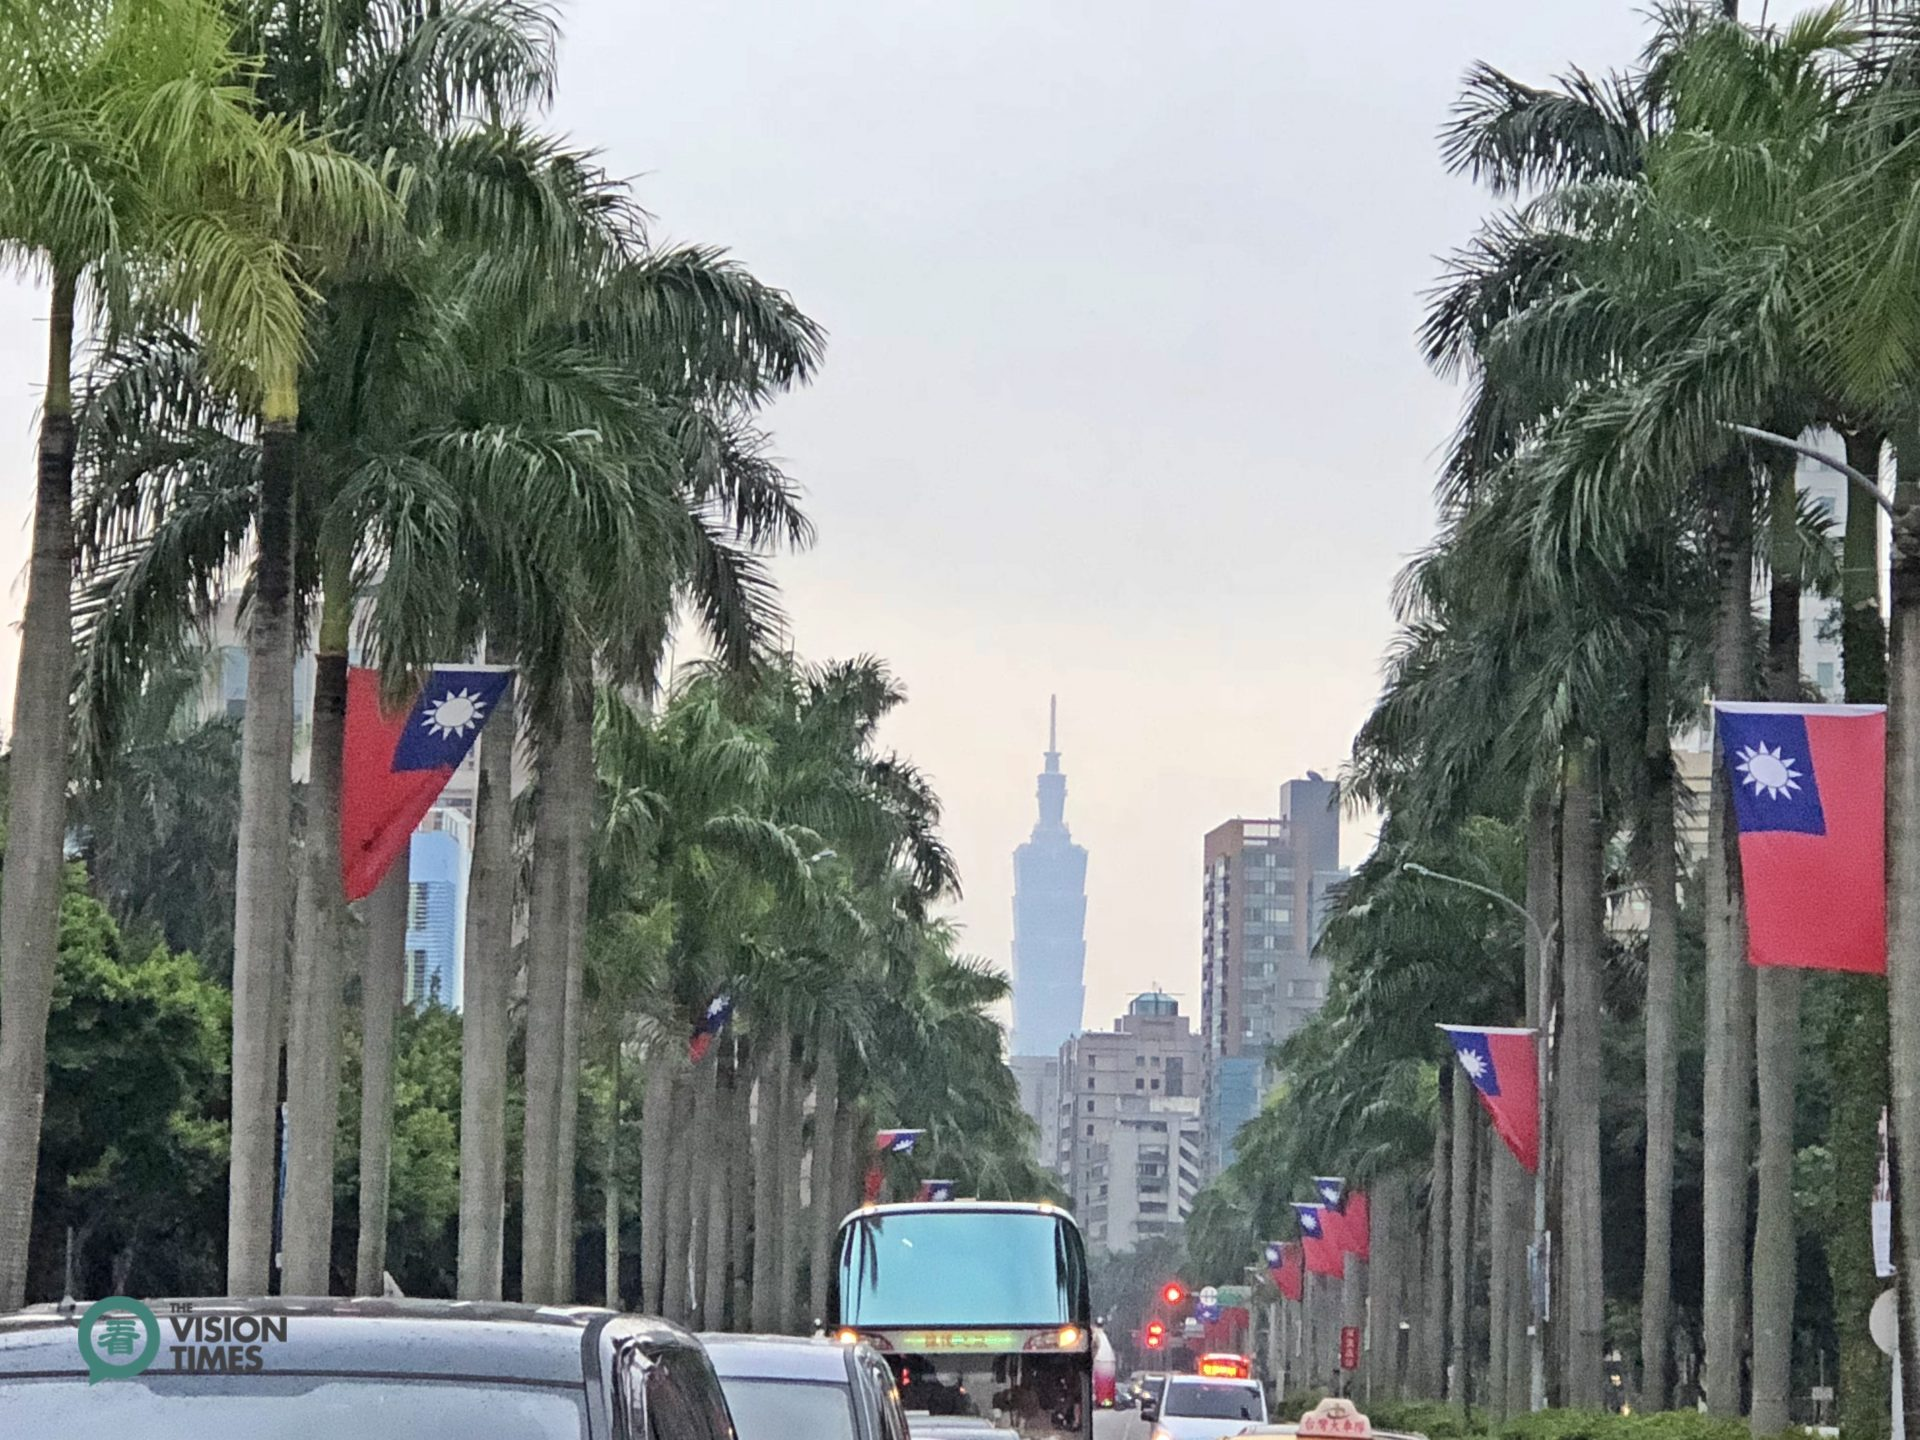 The two sides of some streets in Taipei City are replete with national flags to celebrate Taiwan's National Day. (Image: Billy Shyu / Vision Times)